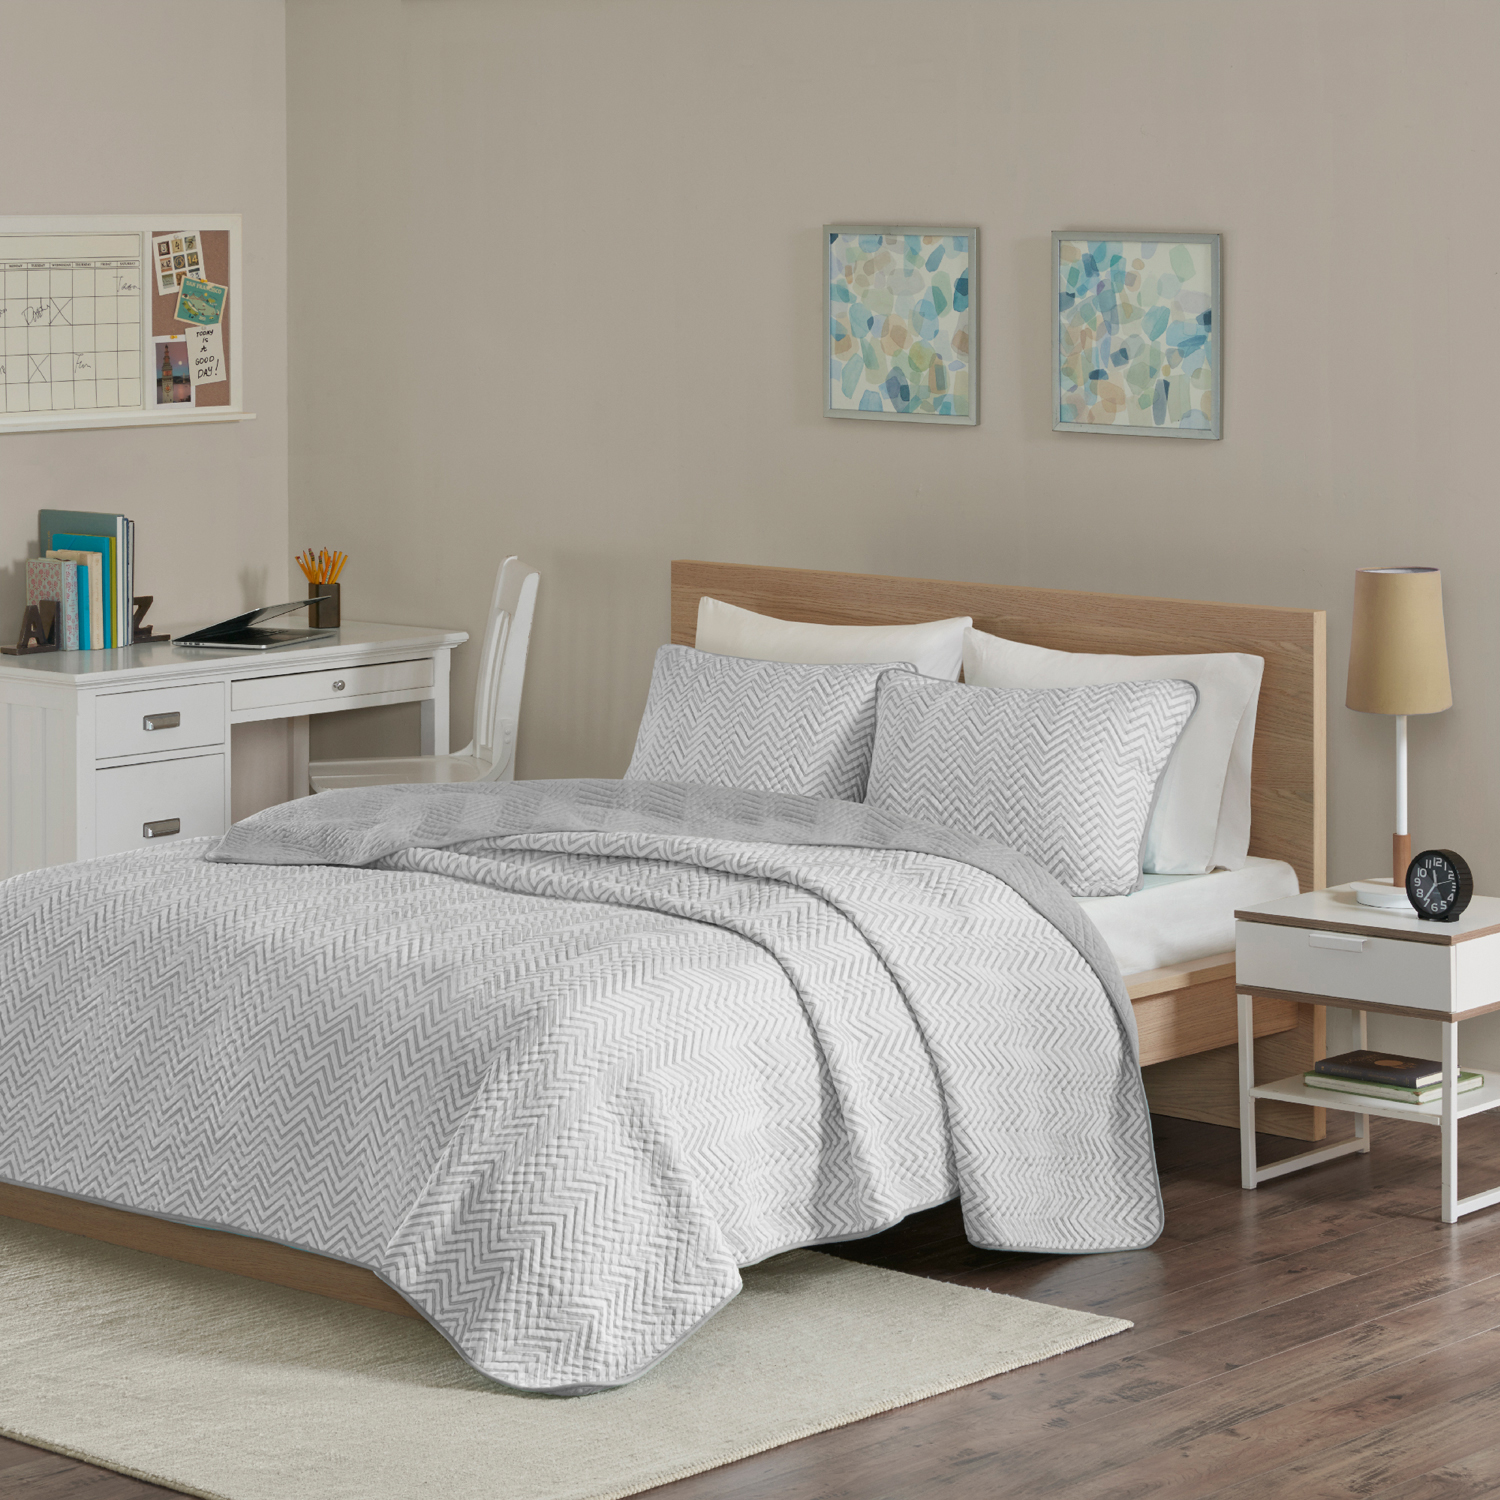 Home Essence Apartment Keya Cotton Blend Jersey Knit Quilt Set